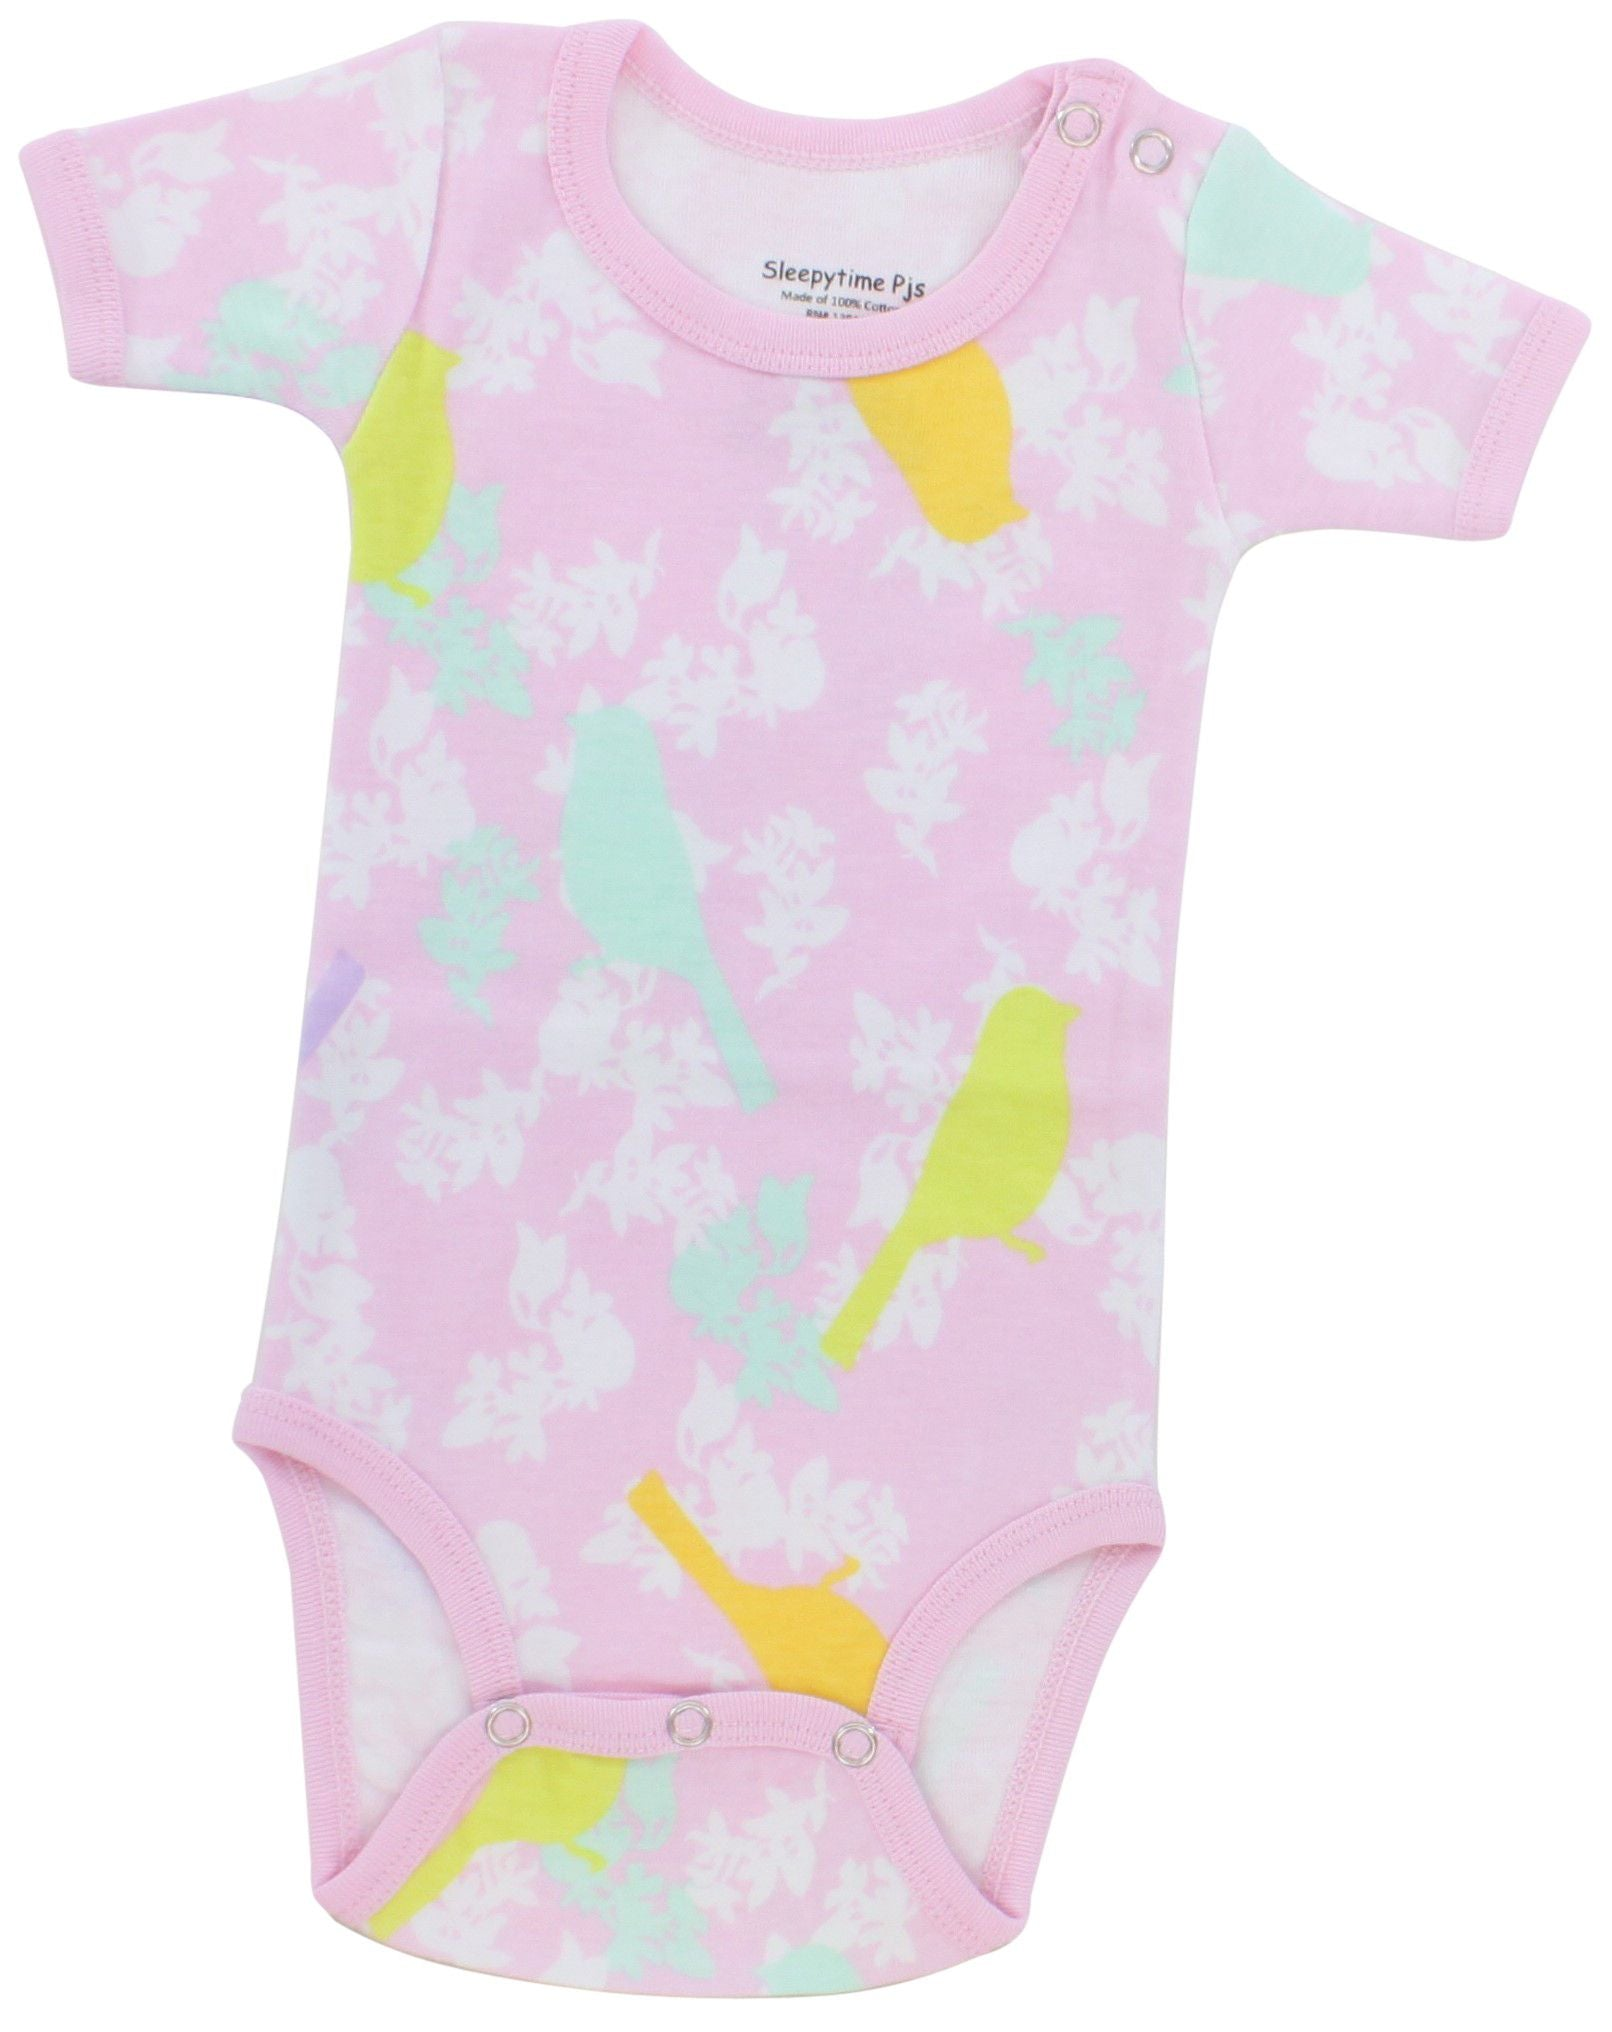 SleepytimePjs Infant Pajamas